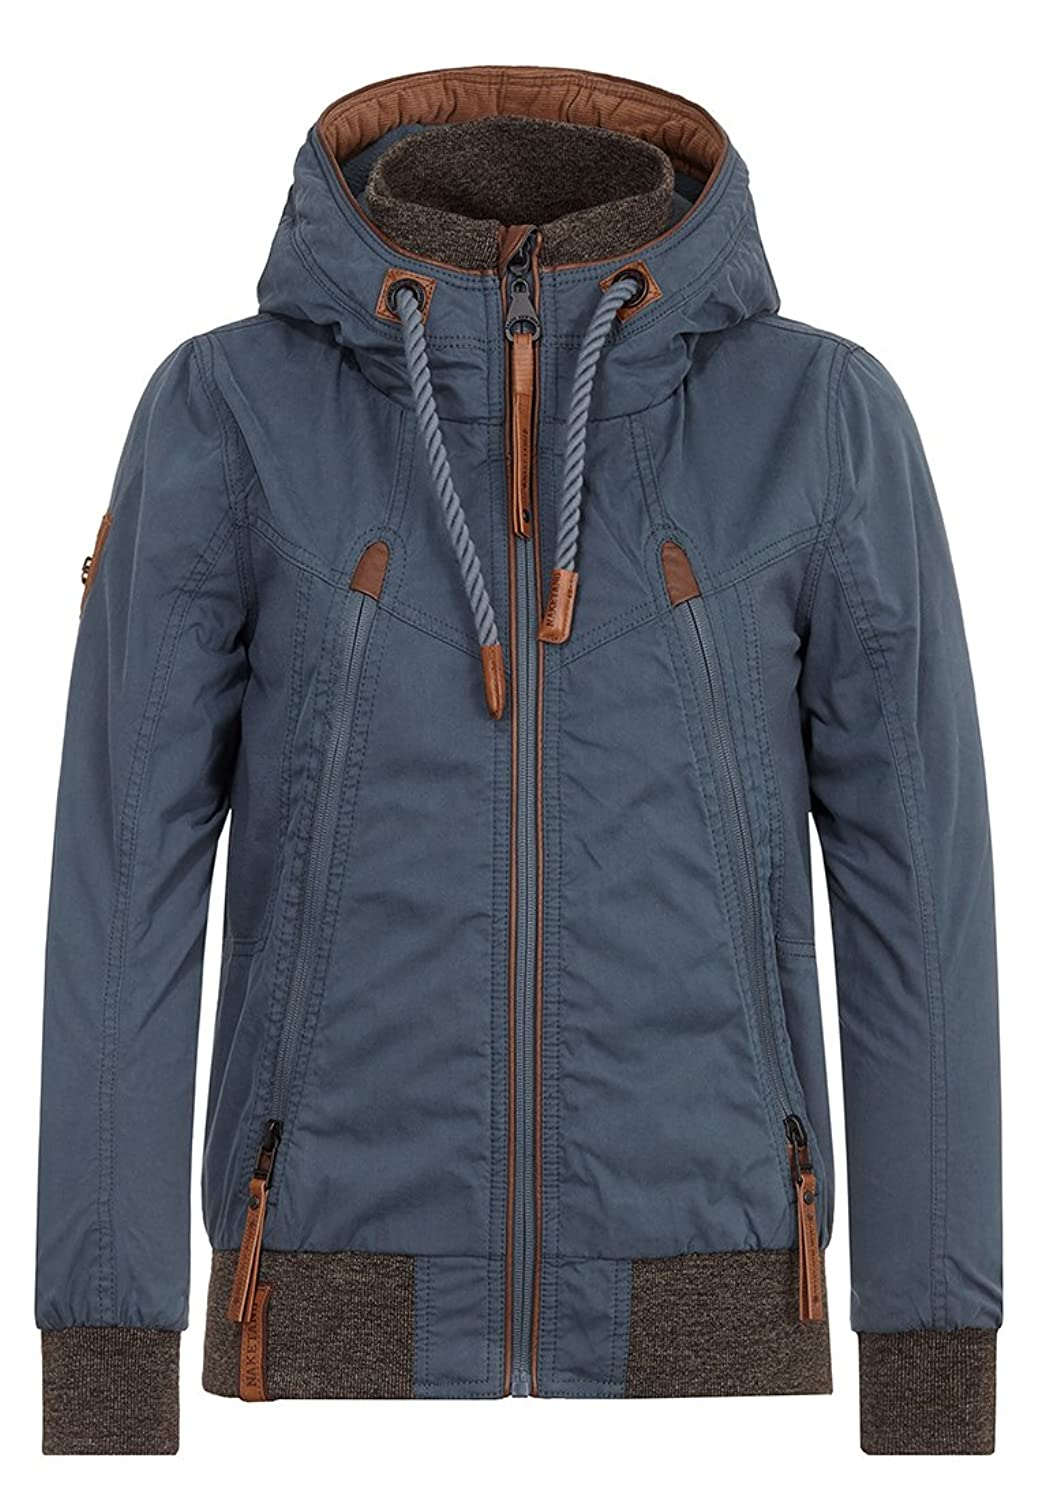 60%OFF Naketano Damen Jacke Tiffy Du Vogel Jacke instacc